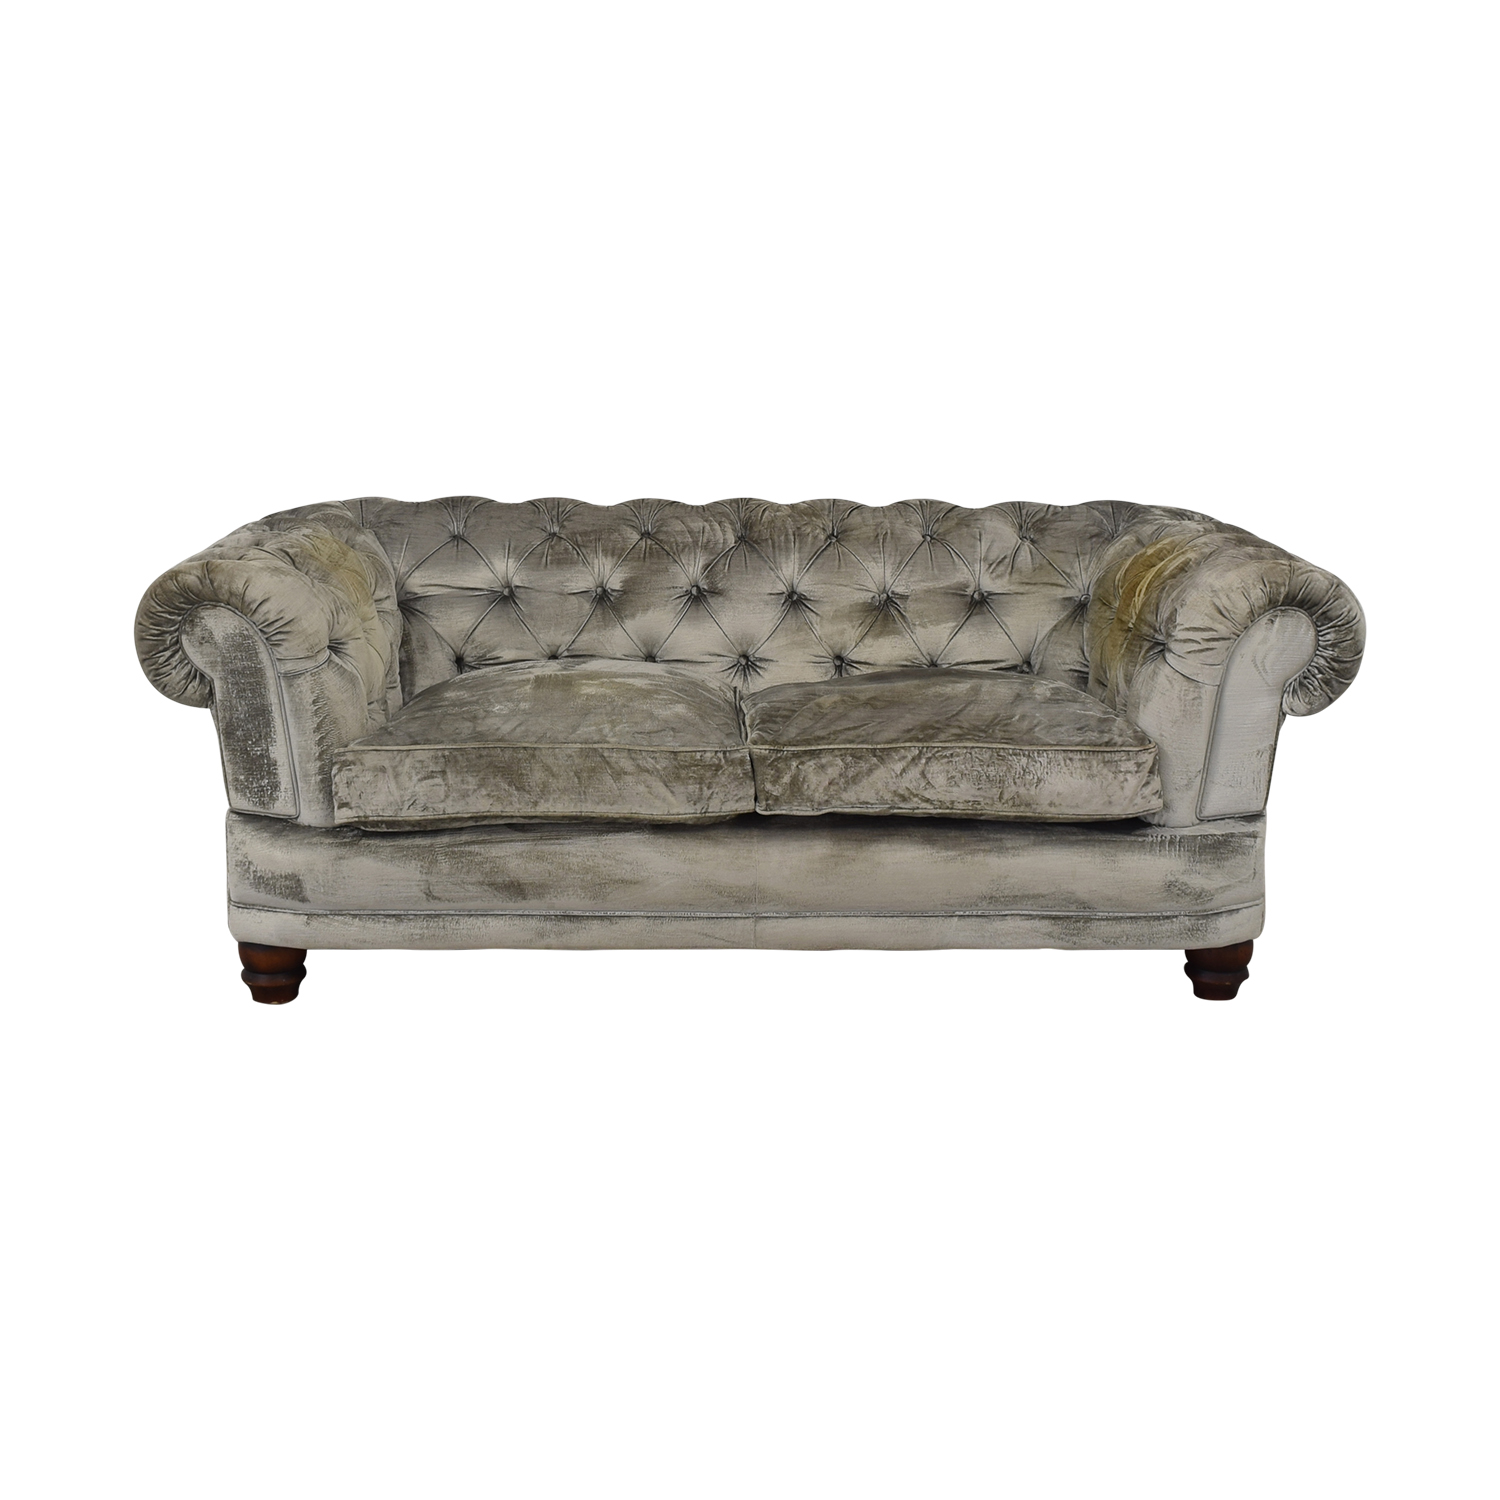 buy John Lewis Two Cushion Velvet Chesterfield Sofa John Lewis Sofas